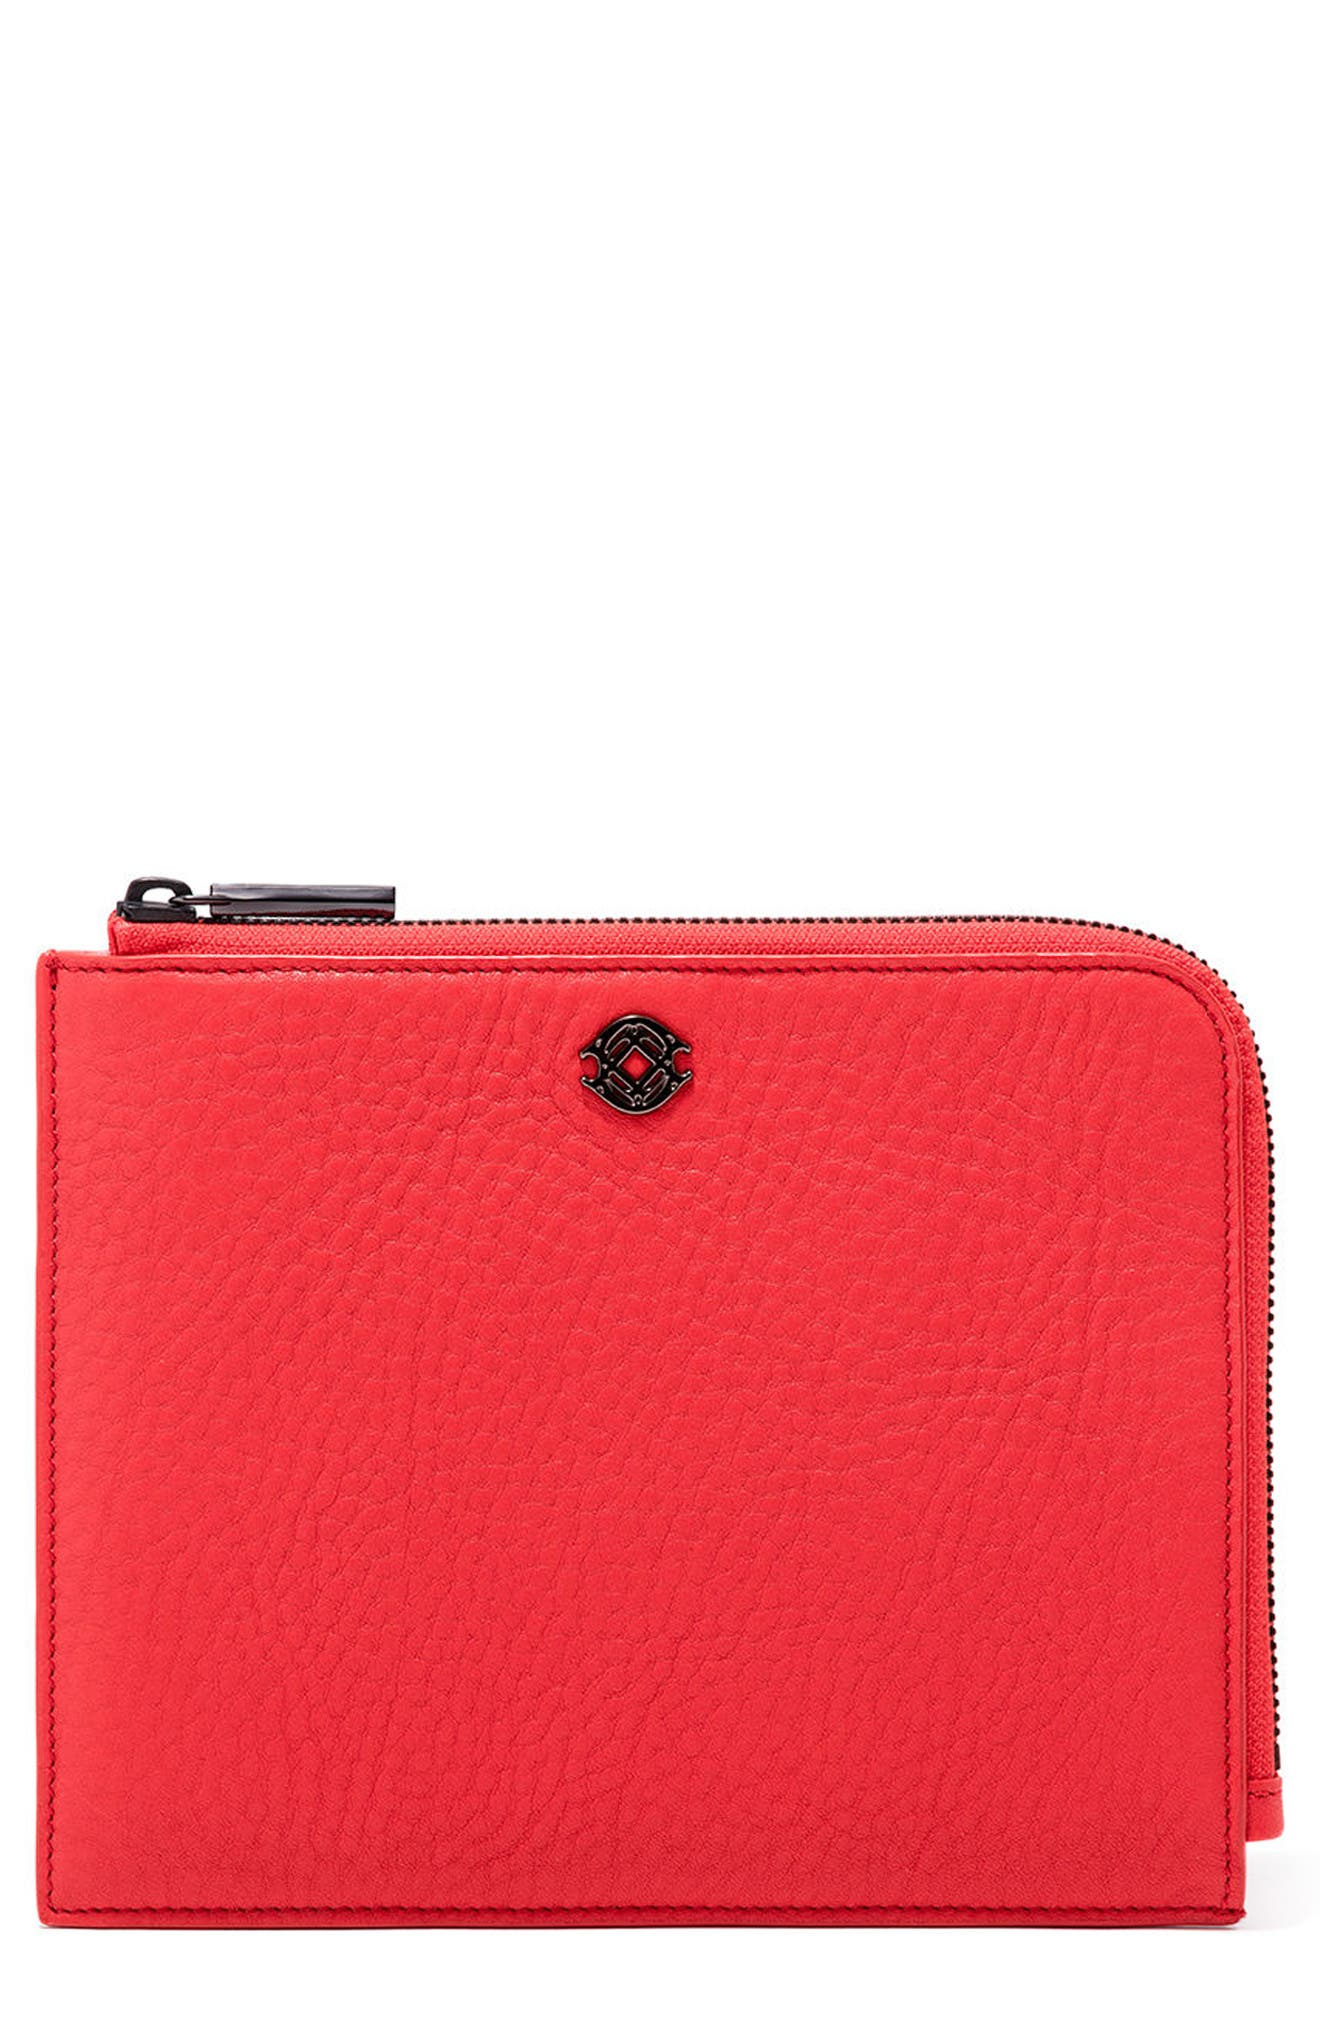 Alternate Image 1 Selected - Dagne Dover Small Elle Leather Clutch